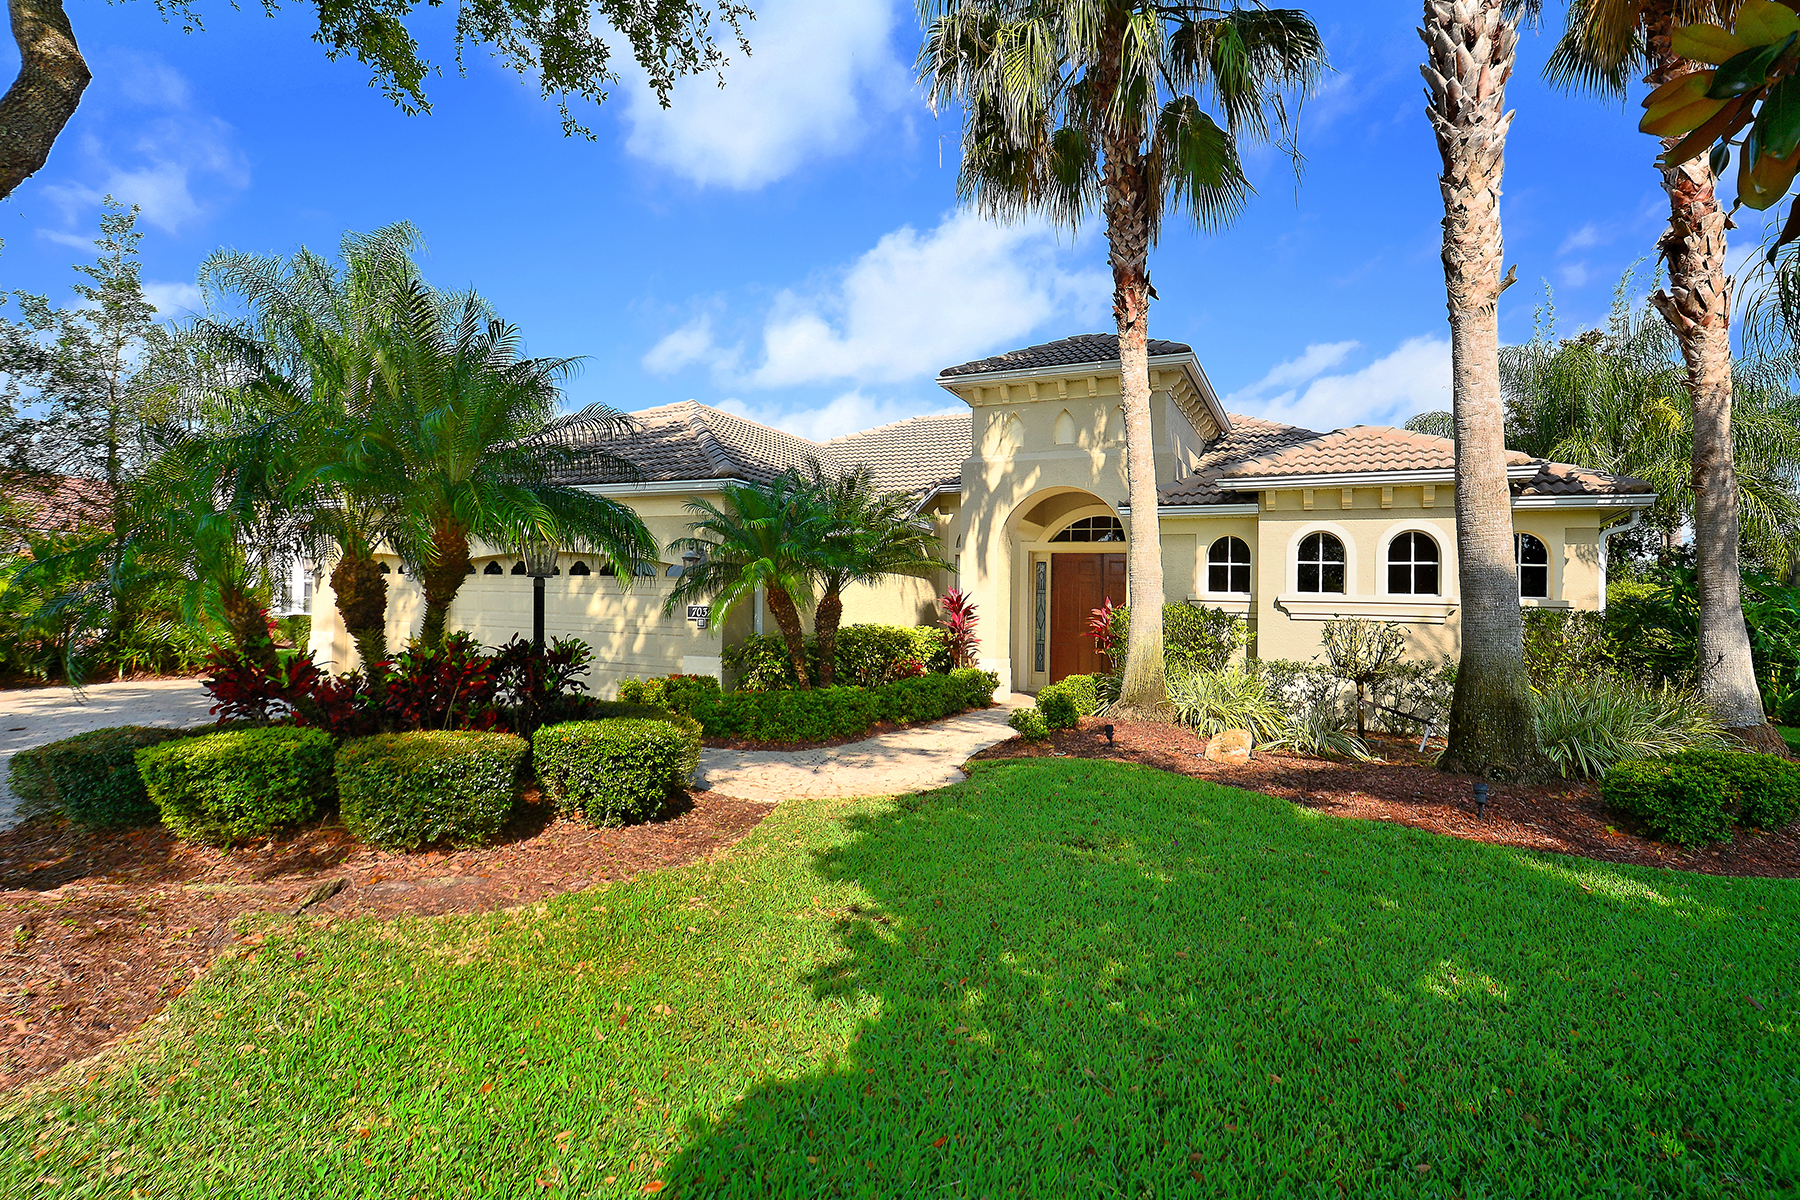 Single Family Home for Sale at LAKEWOOD RANCH 7031 Twin Hills Terr Lakewood Ranch, Florida, 34202 United States